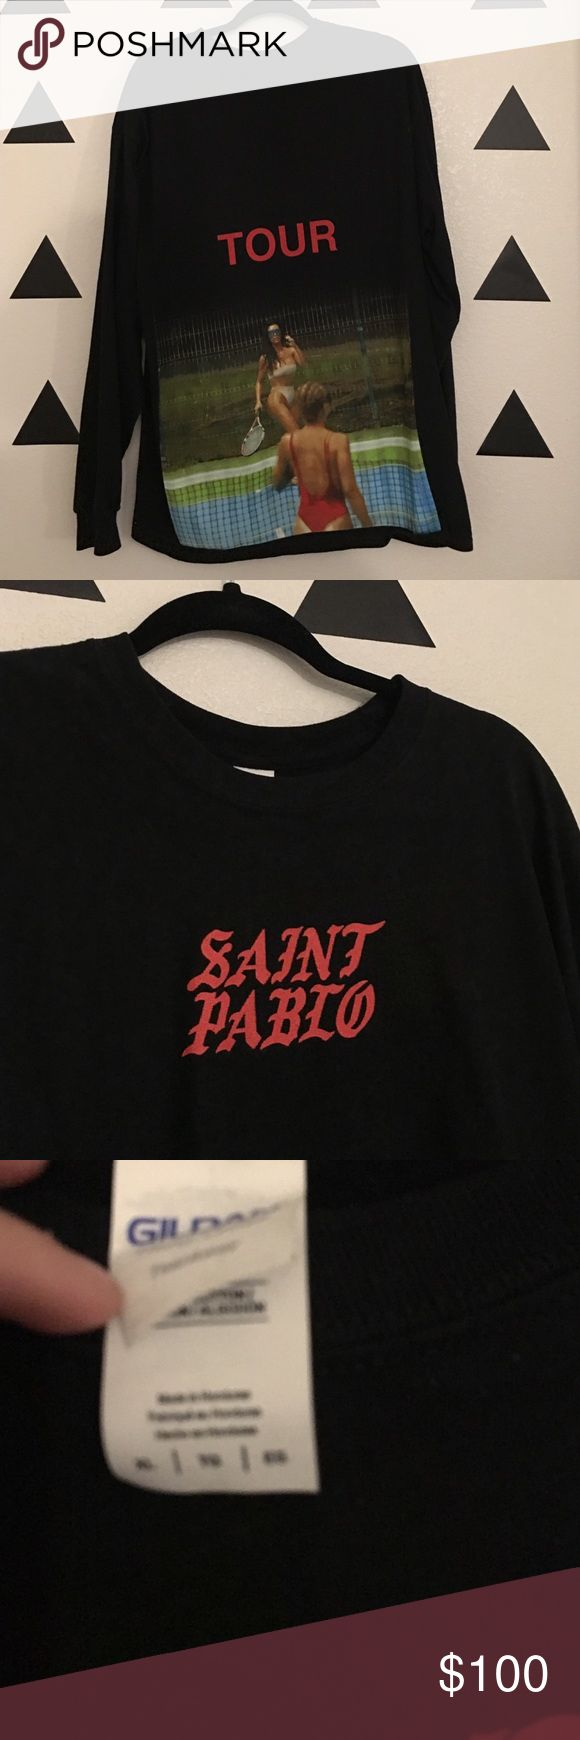 KANYE WEST SAINT PABLO TOUR MERCH AUTHENTIC KANYE WEST SAINT PABLO TOUR MERCH AUTHENTIC NEVER WORN BOUGHT AT LA SHOW. MENS XL TO WEAR AS DRESS FOR GIRLS. Yeezy Tops Tees - Long Sleeve